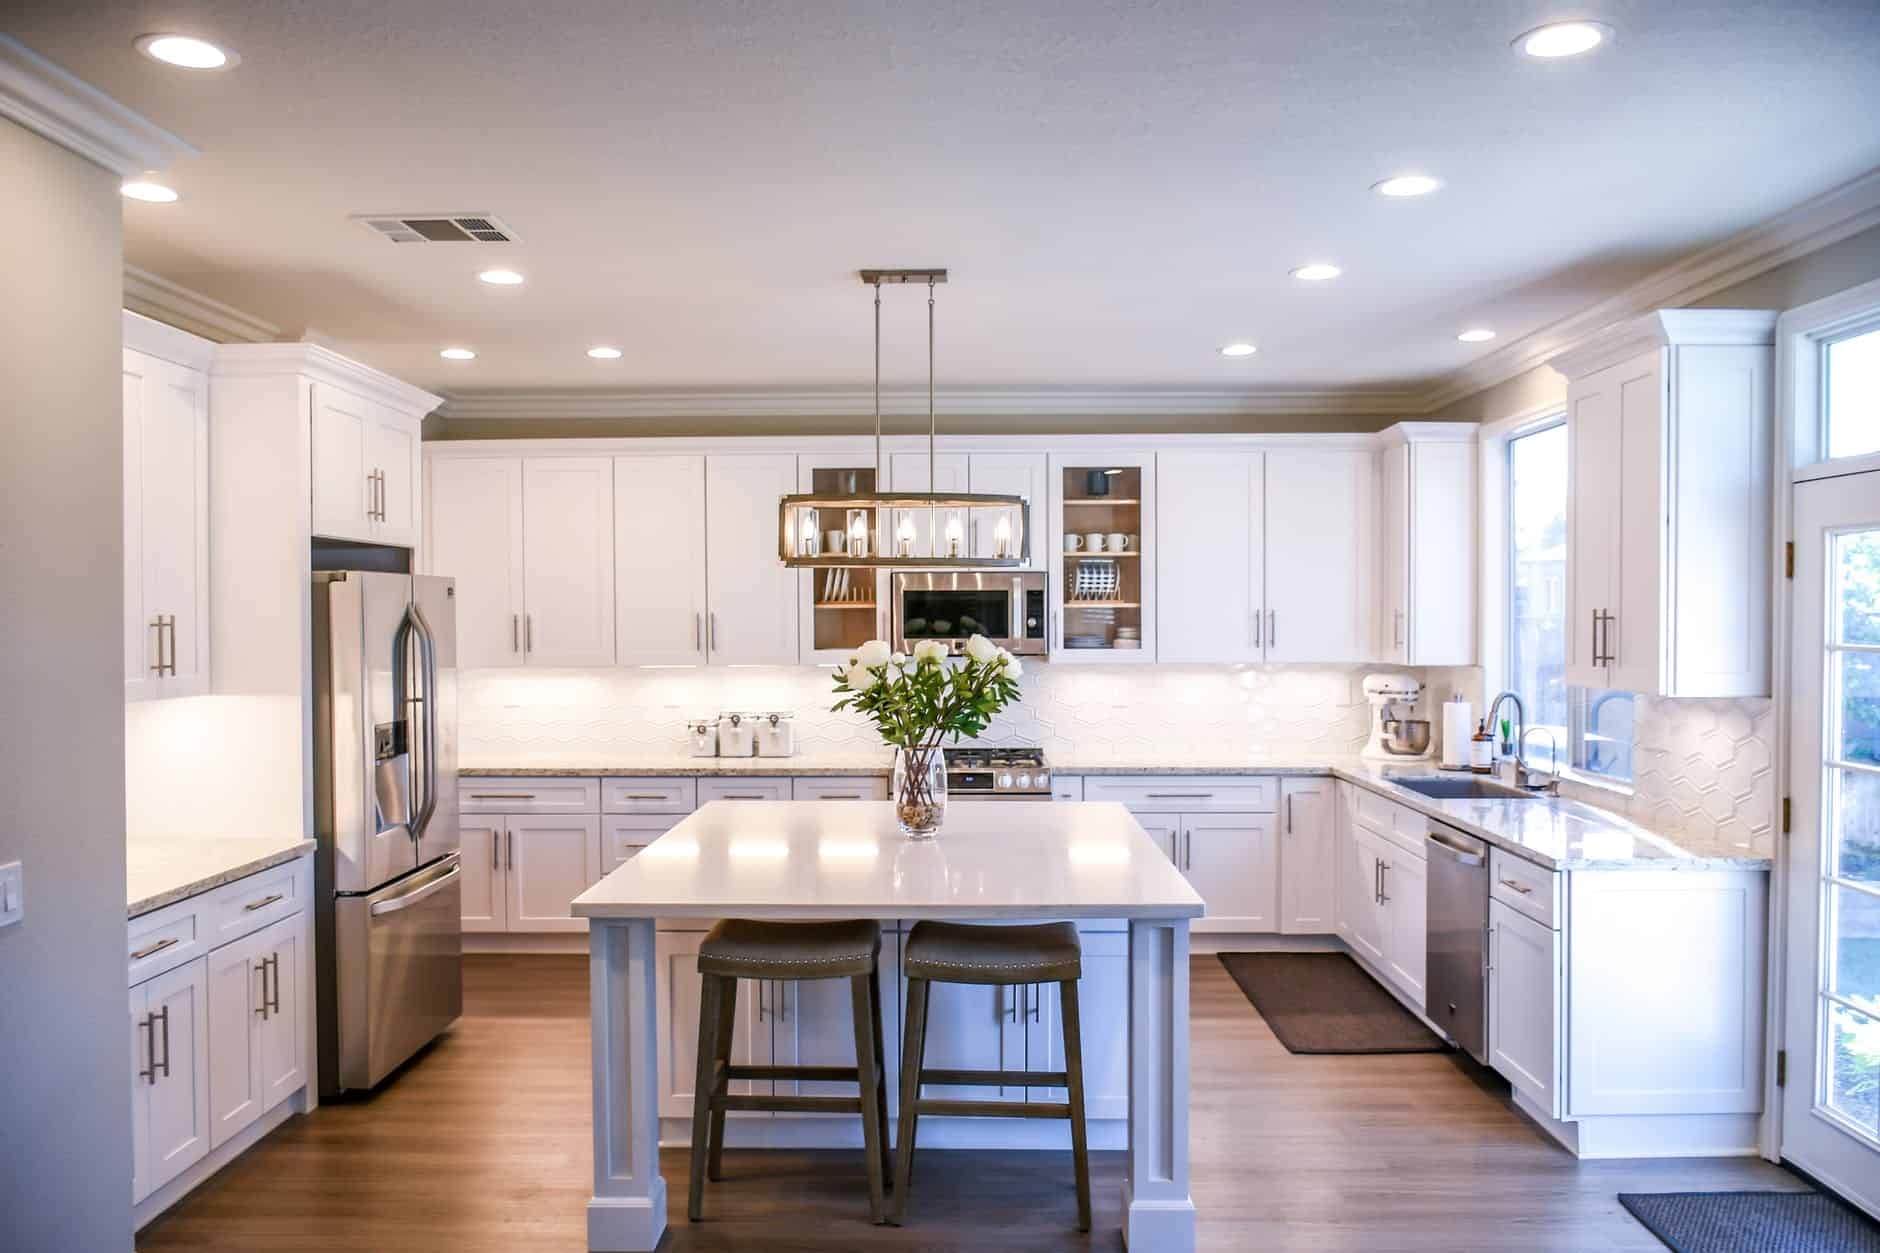 A Kitchen Guide Can Help You Decorate With Accents